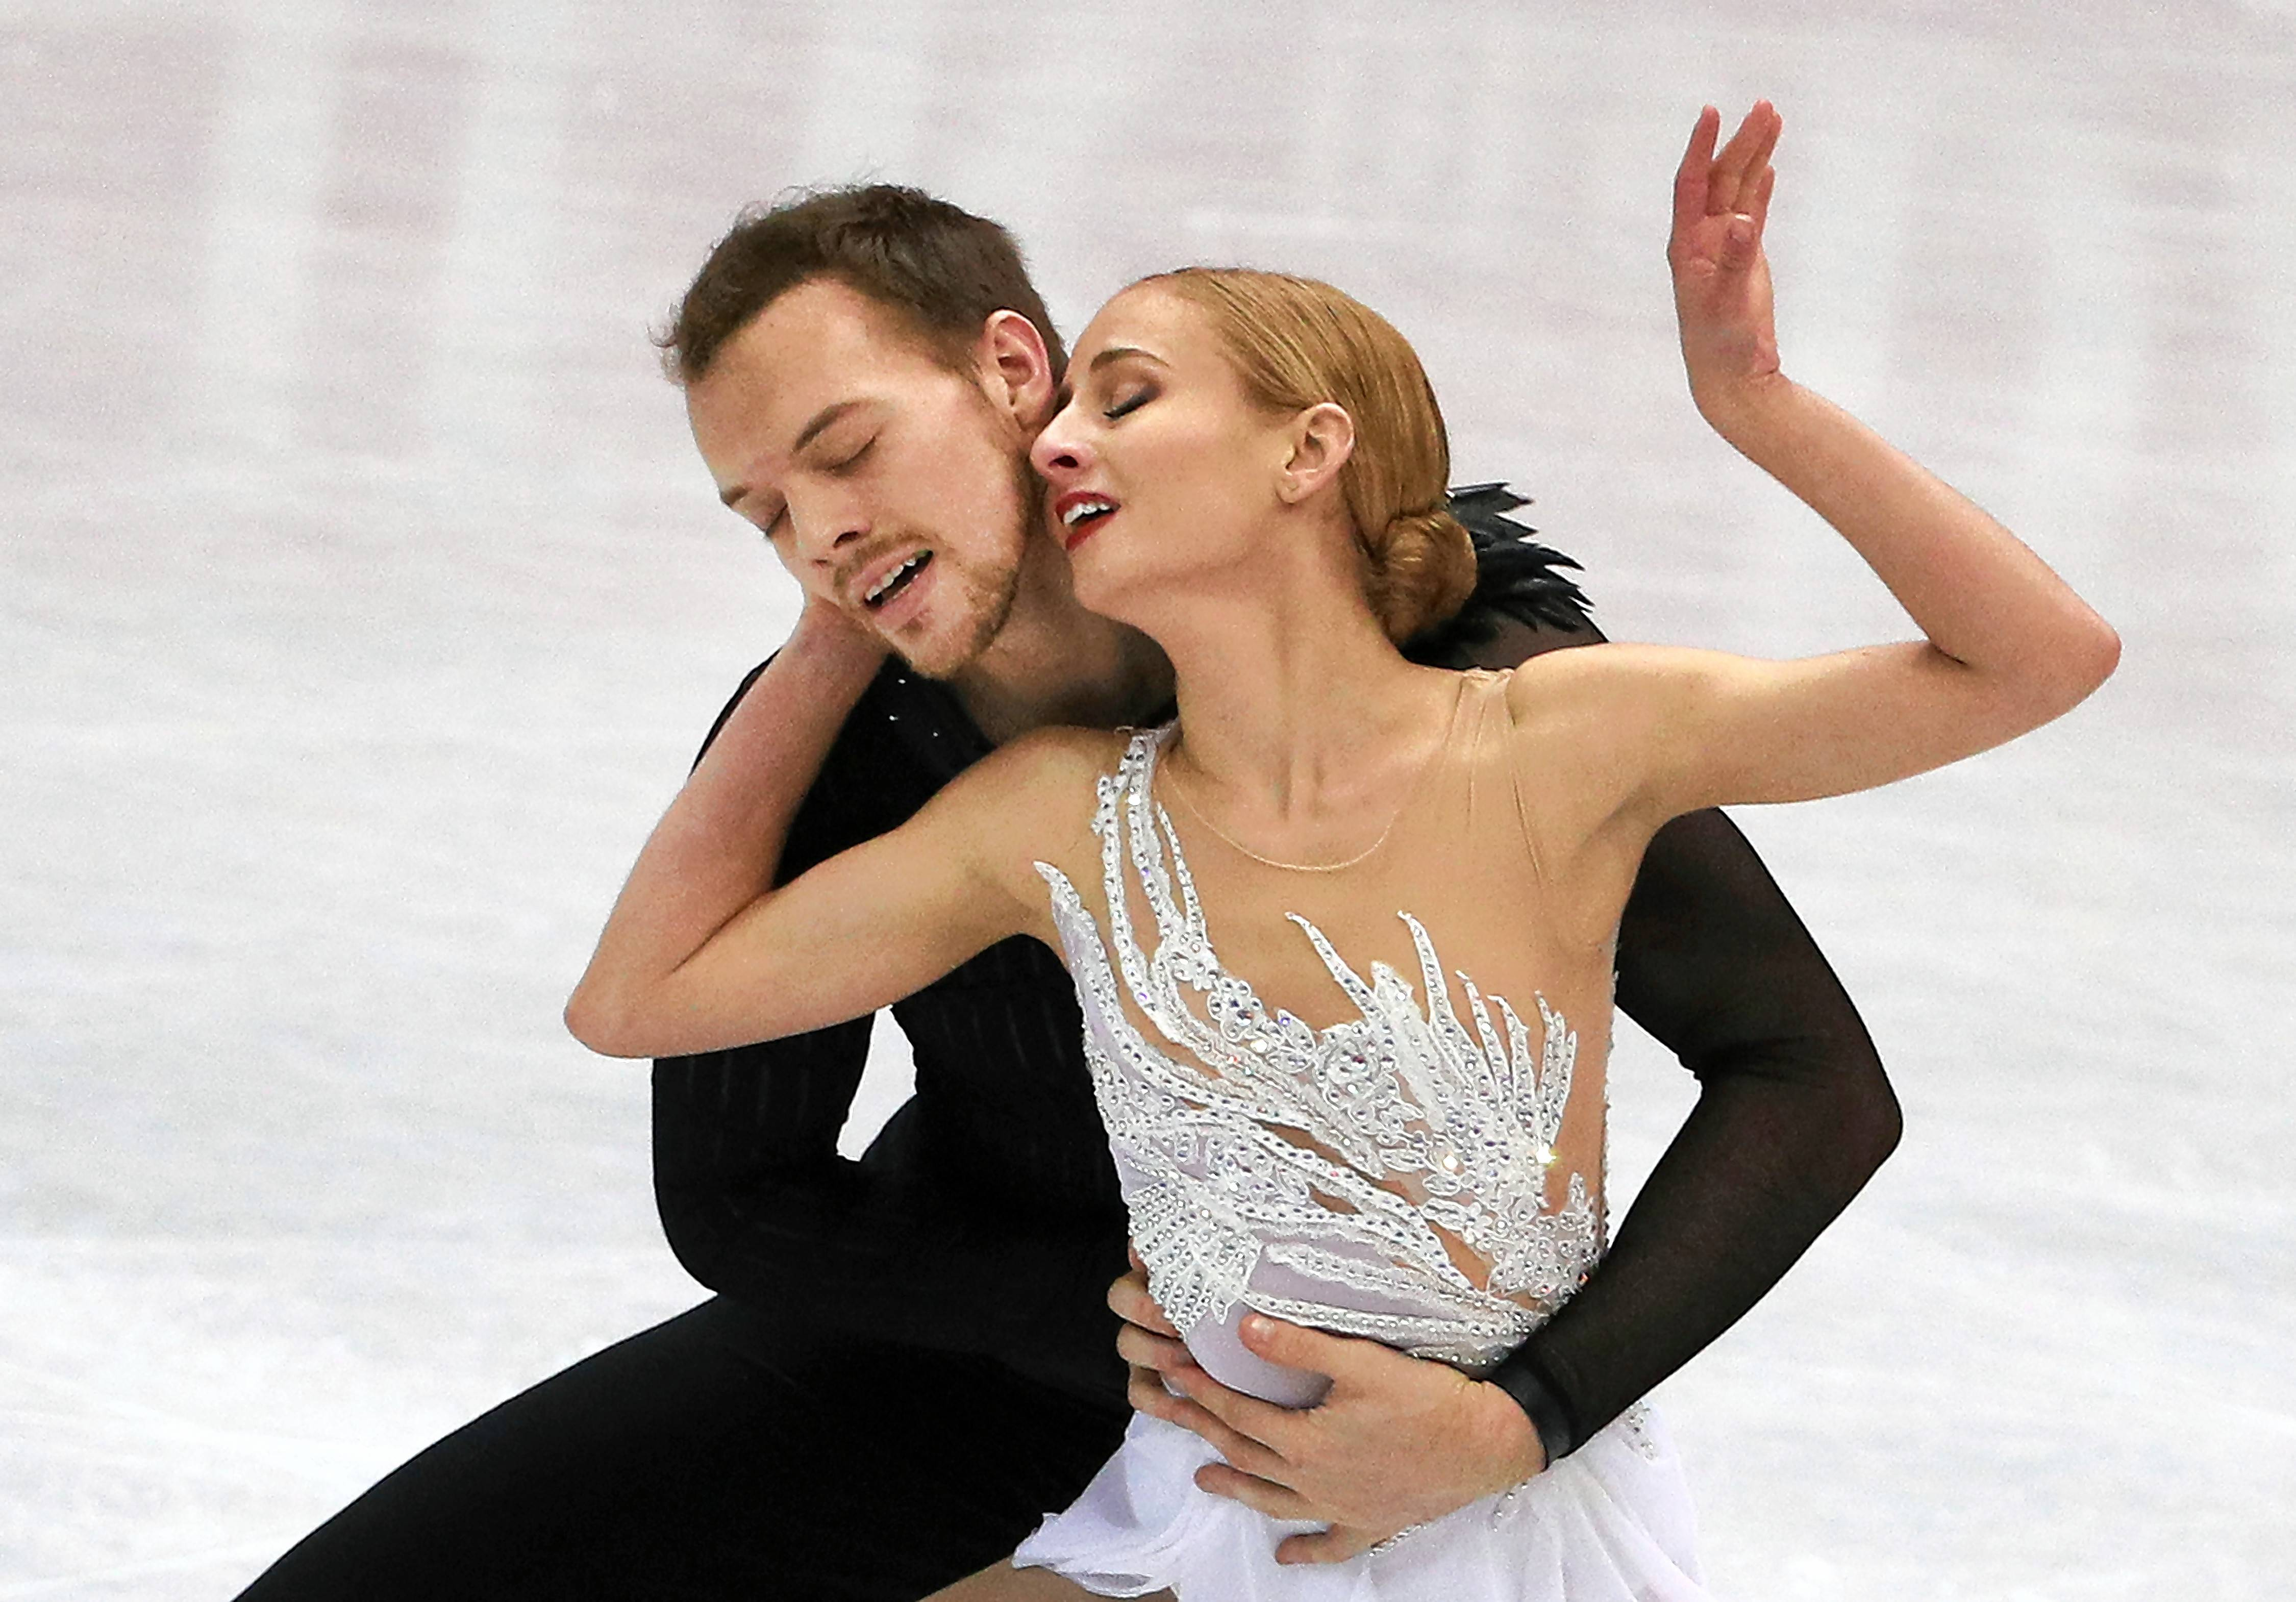 Tarah Kayne and Gurnee's Danny O'Shea became the first U.S. pair in 12 years to win the ISU Four Continents Figure Skating Championships last month. They are the first alternates for the Olympic team.